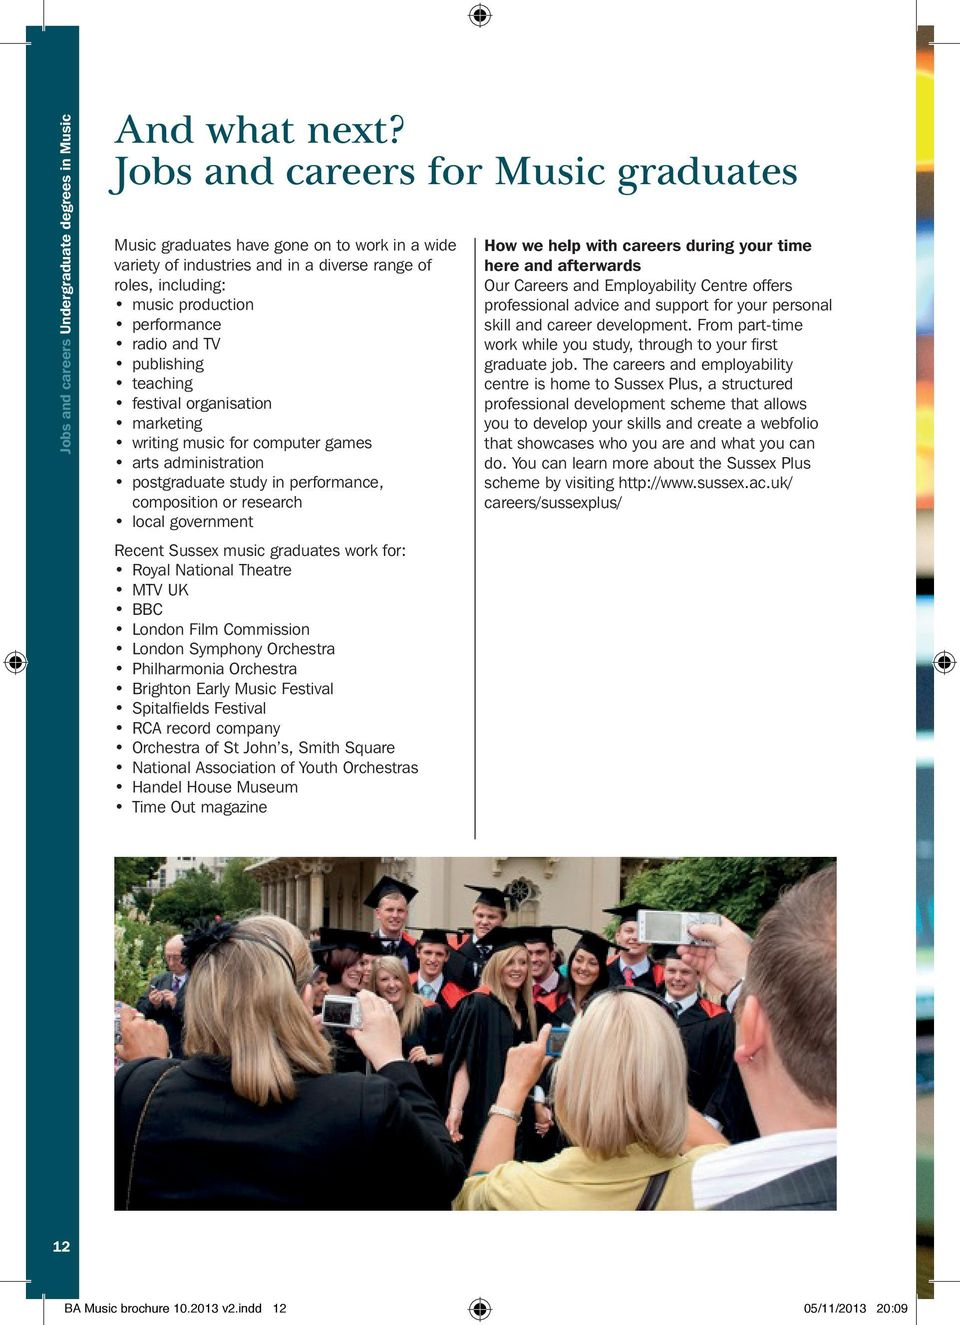 publishing teaching festival organisation marketing writing music for computer games arts administration postgraduate study in performance, composition or research local government Recent Sussex